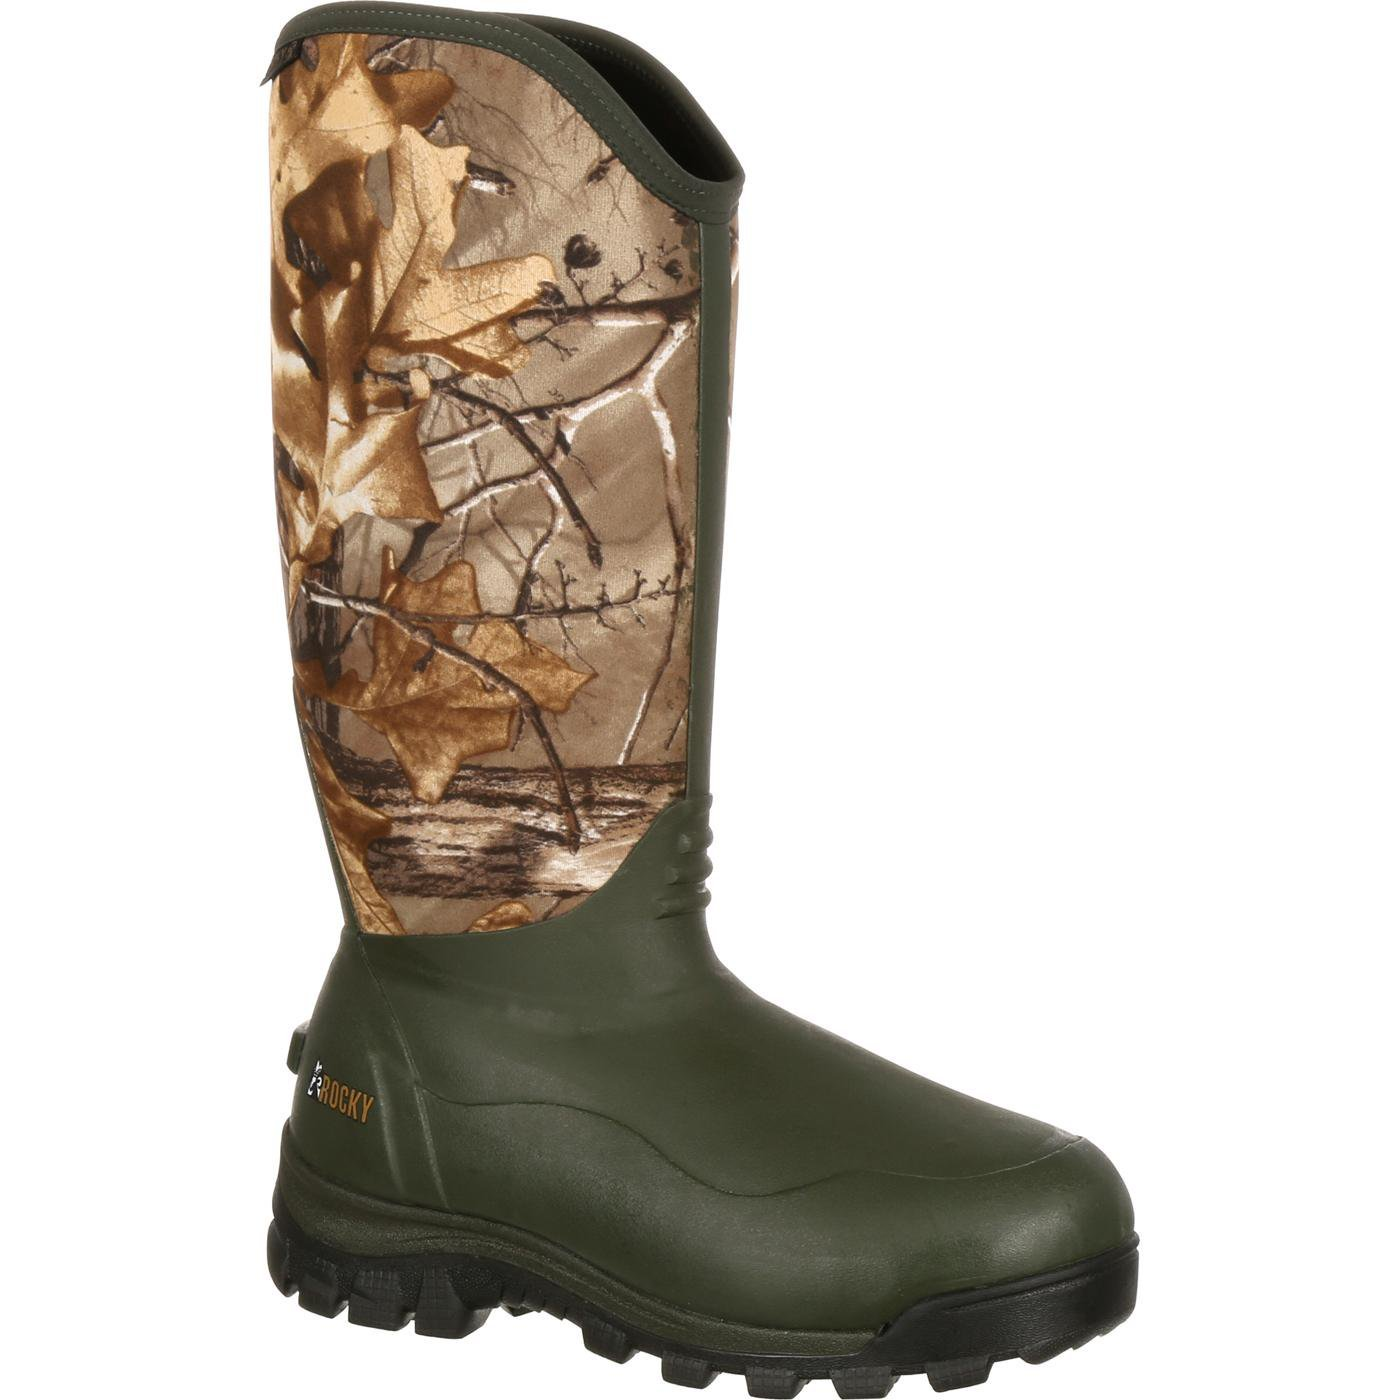 ROCKY Core Neoprene 1000g Insulated Boot, APX, 11 by ROCKY